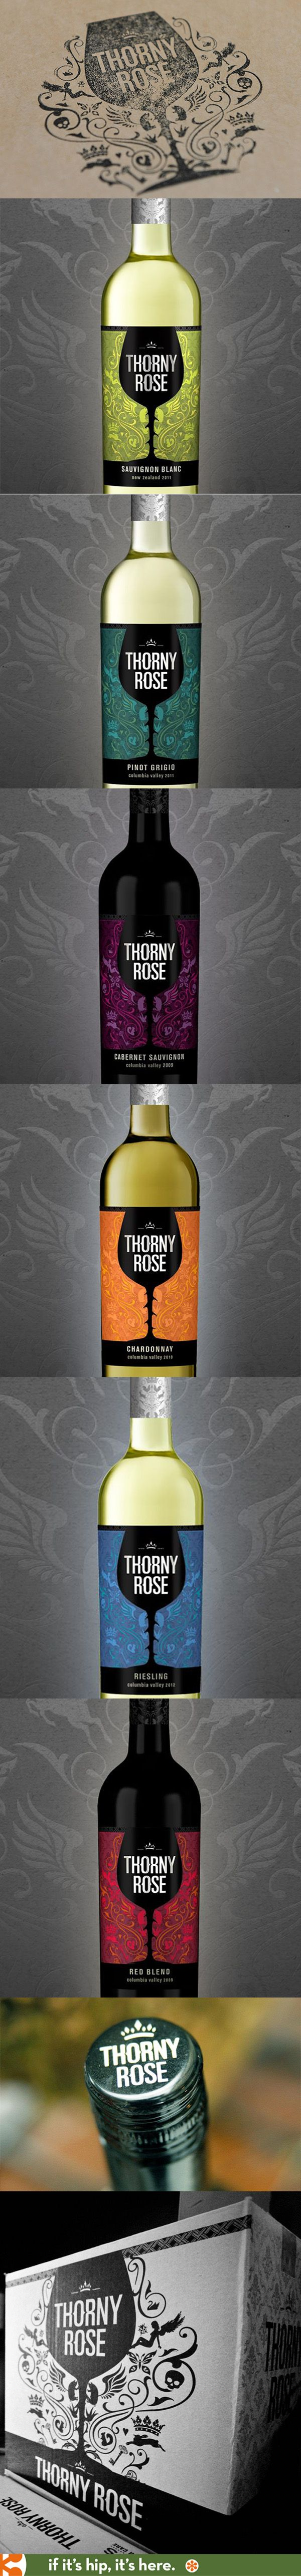 The lovely labels, shipping cartons and logo for Thorny Rose Wines.